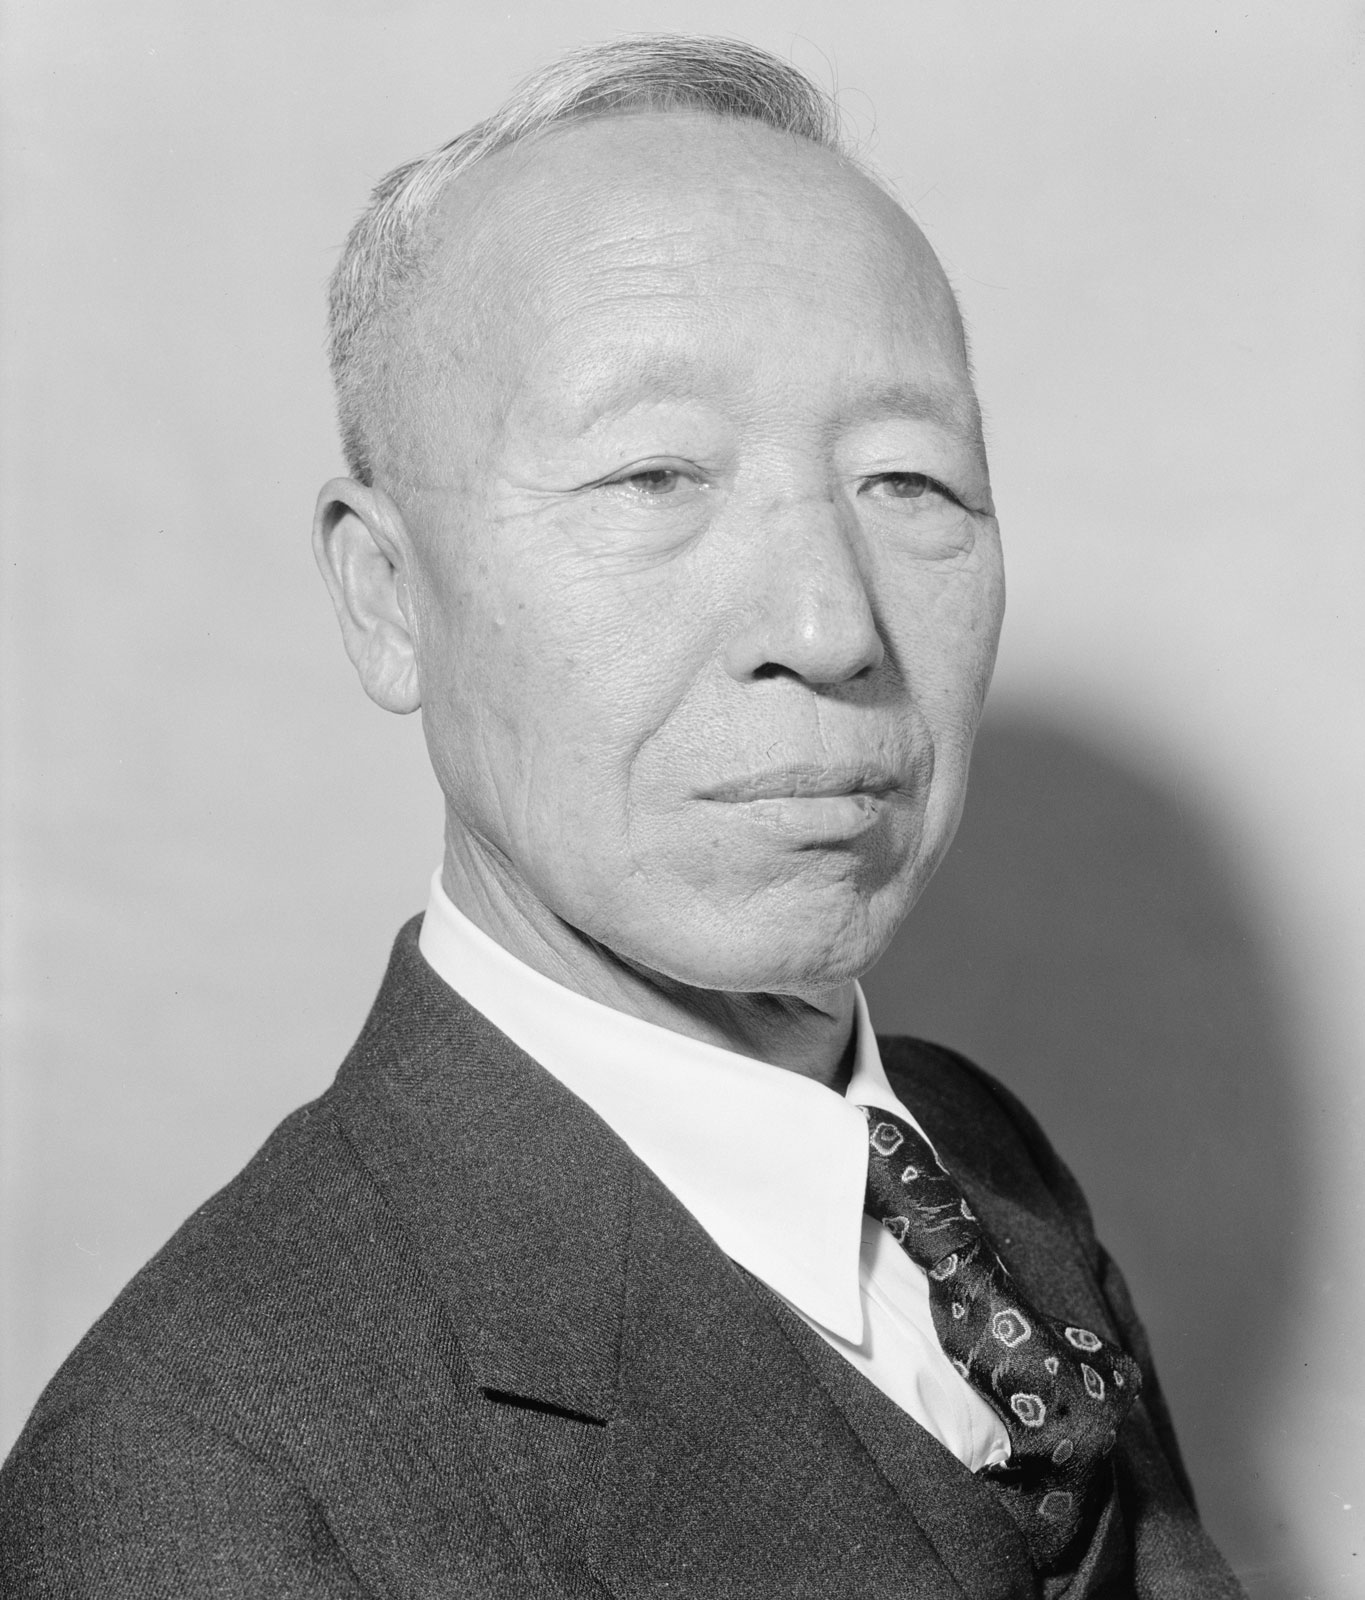 Syngman Rhee headed South Korea from its beginning in 1948 to his overthrow in 1960